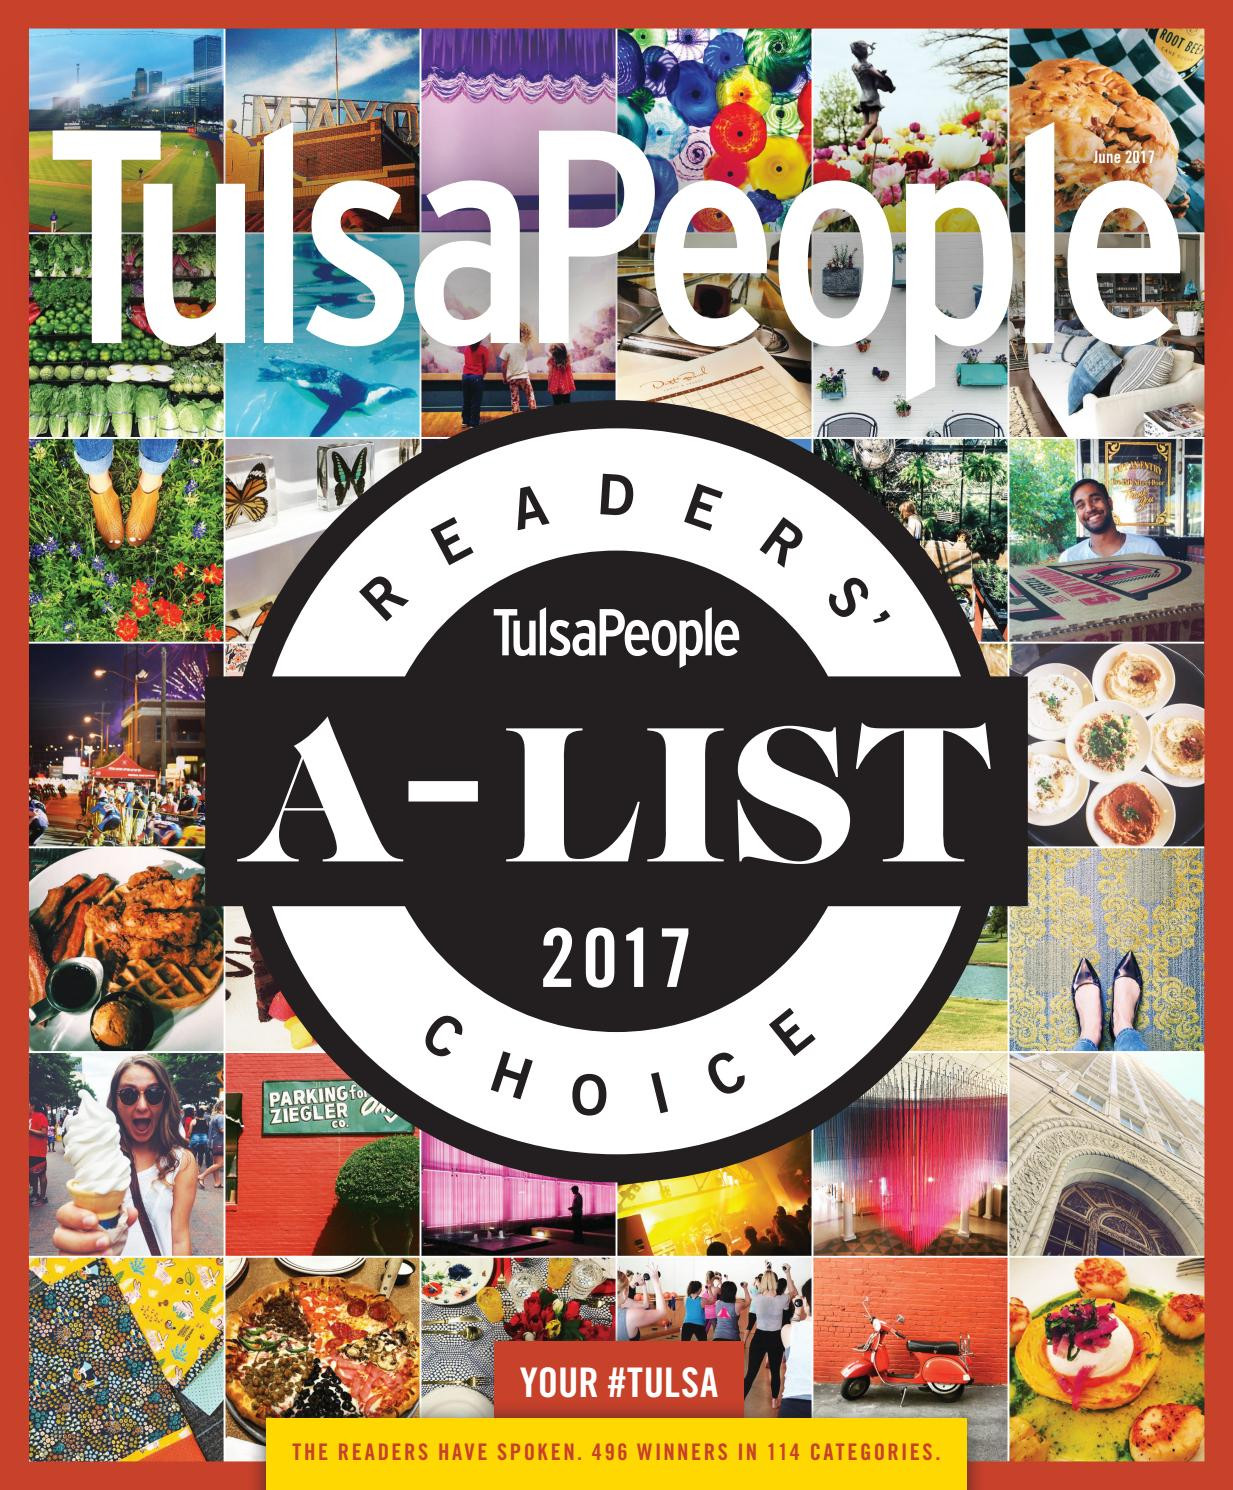 renaissance hardwood floors tulsa ok of tulsapeople june 2017 by tulsapeople issuu with page 1